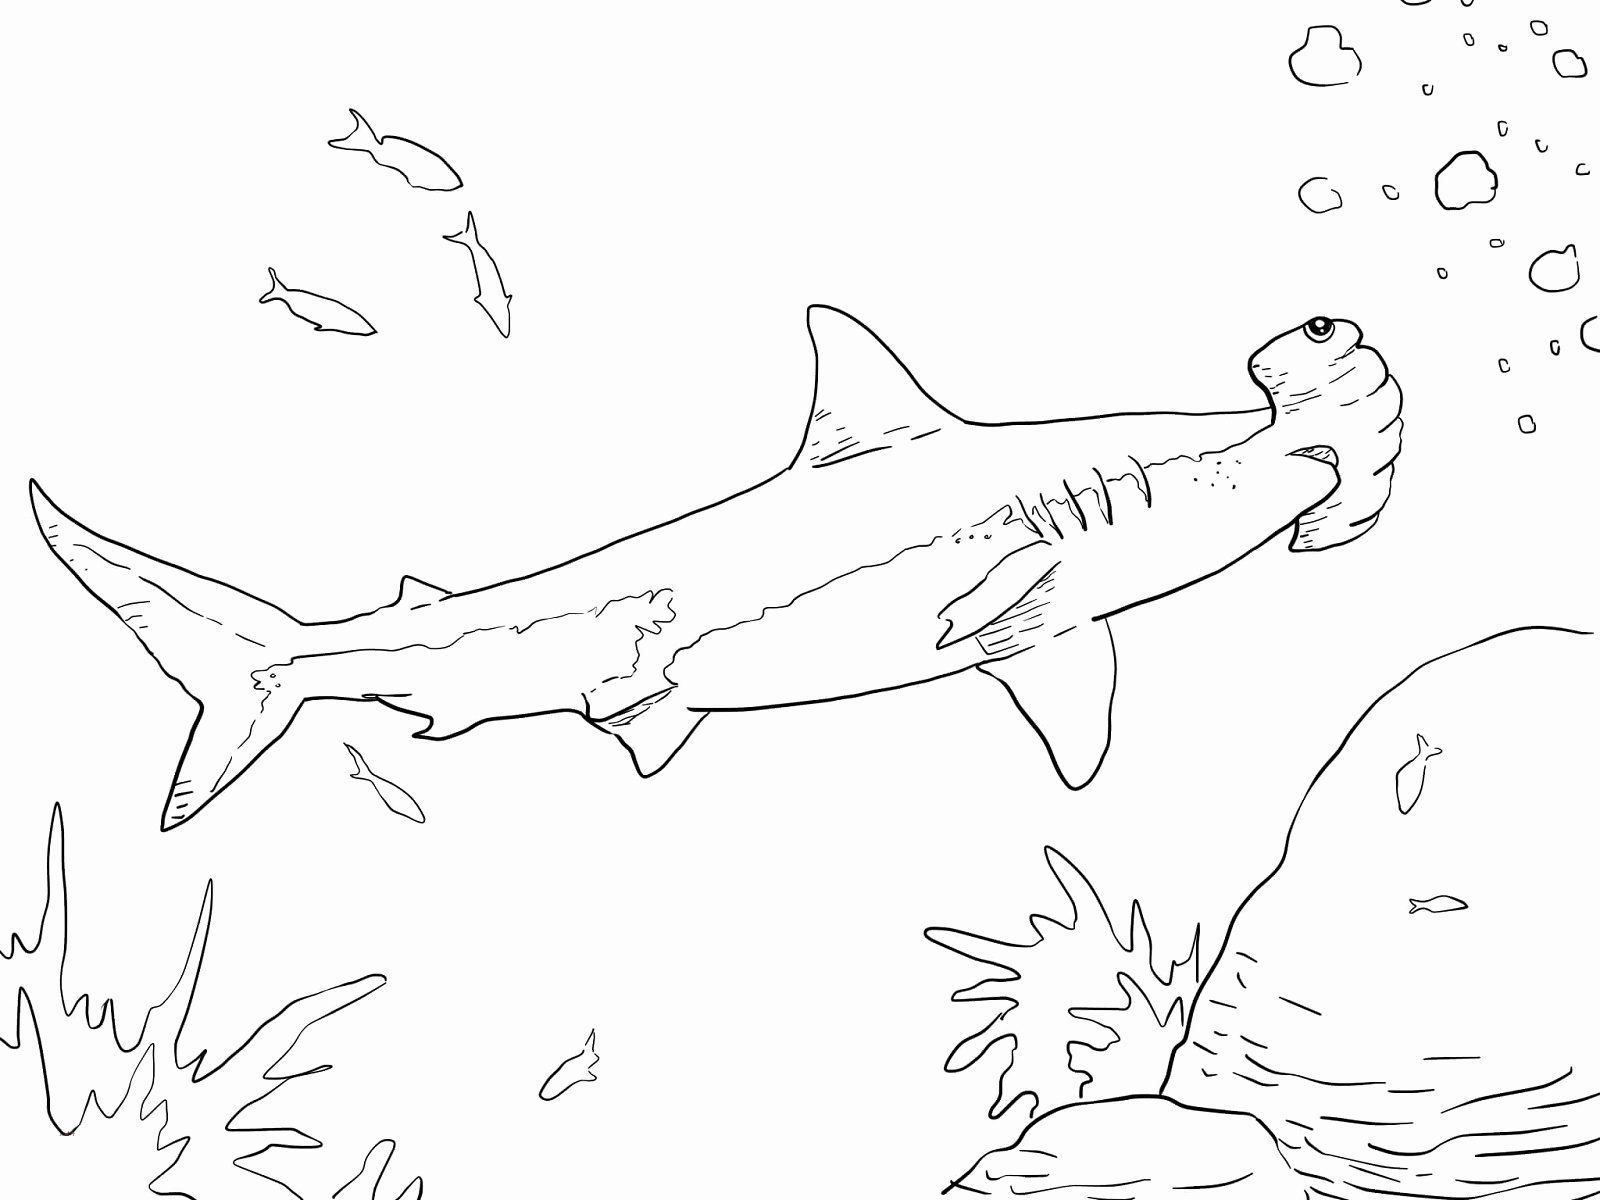 Hammerhead Shark Coloring Page Inspirational Coloring Pages Hammerhead  Sharks Food Ideas in 2020 | Shark coloring pages, Shape coloring pages, Bee coloring  pages